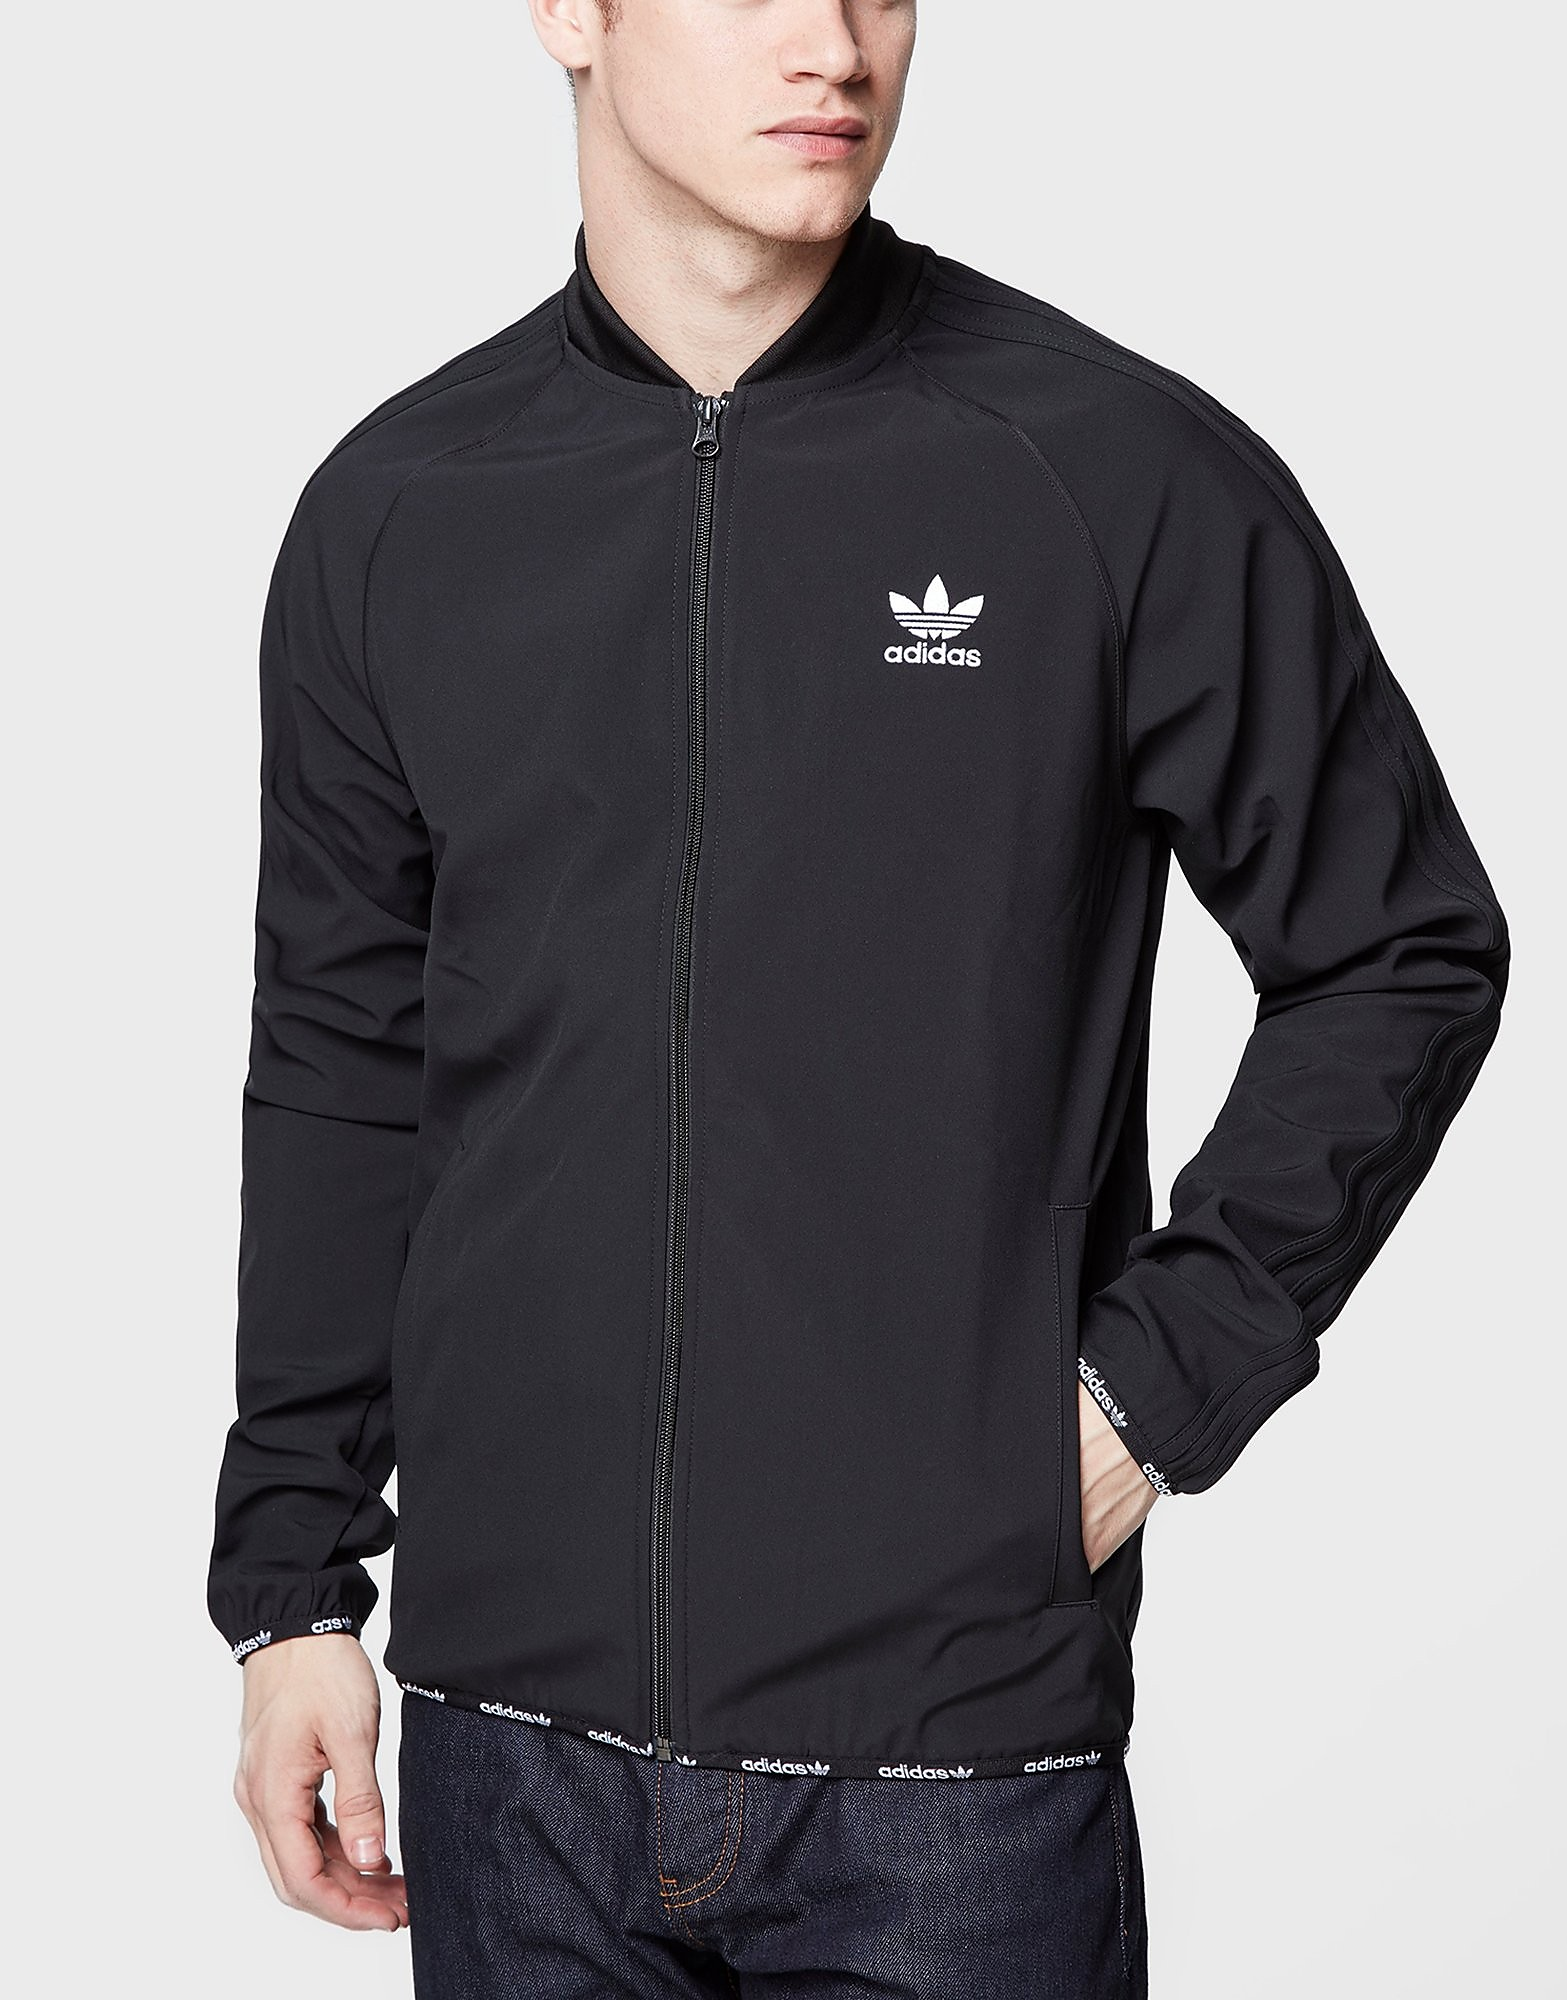 adidas Originals Superstar 2.0 Track Top